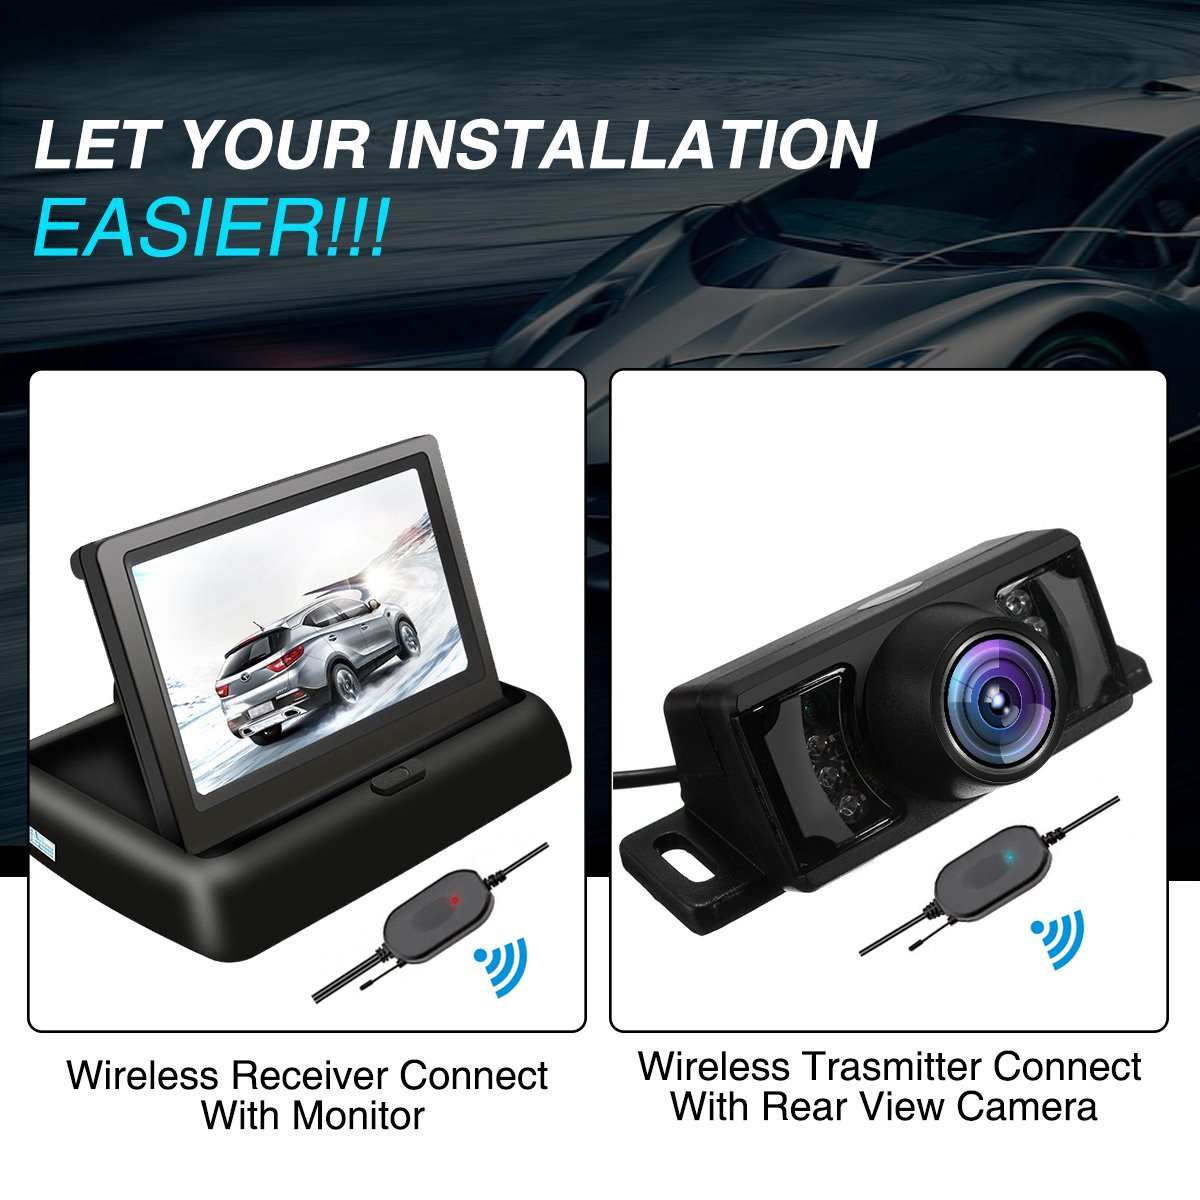 Tvird Backup Camera And Monitor Wireless Car Rear View Reversing Tft Lcd Wiring Diagram System Night Vision Ir Foldable 43 Color Hd